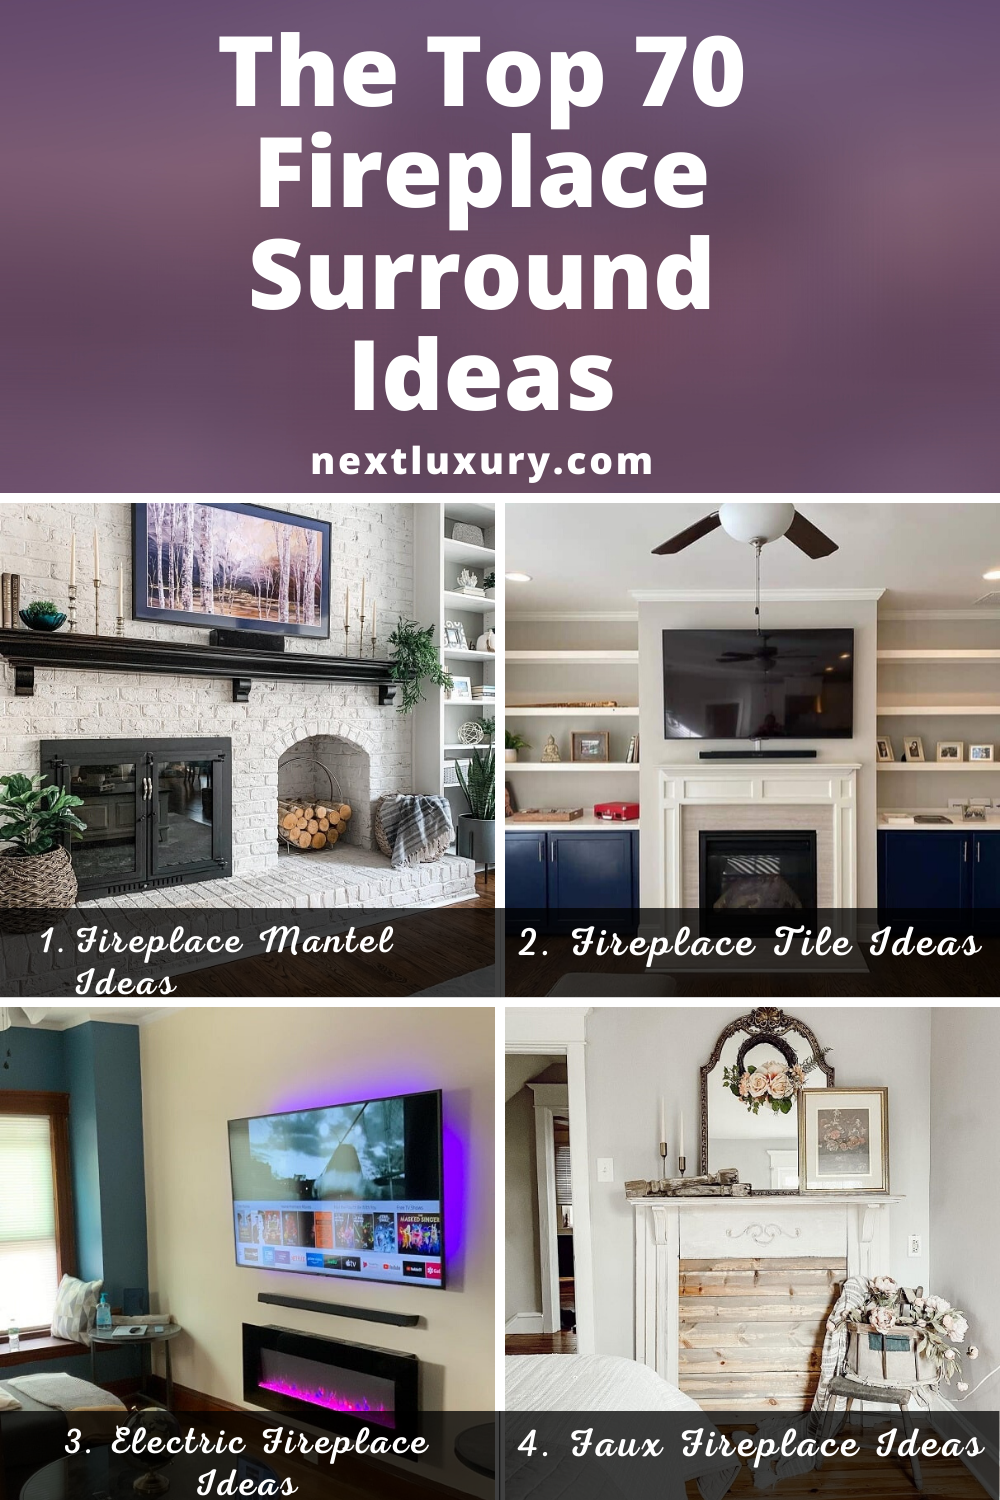 Gallery of the Best Fireplace Surround Ideas. Includes Fireplace Mantel Ideas, Fireplace Tile Ideas and Electric Fireplace Ideas. #homedecor #homedecorideas #homedesign #homedesignideas #nextluxury